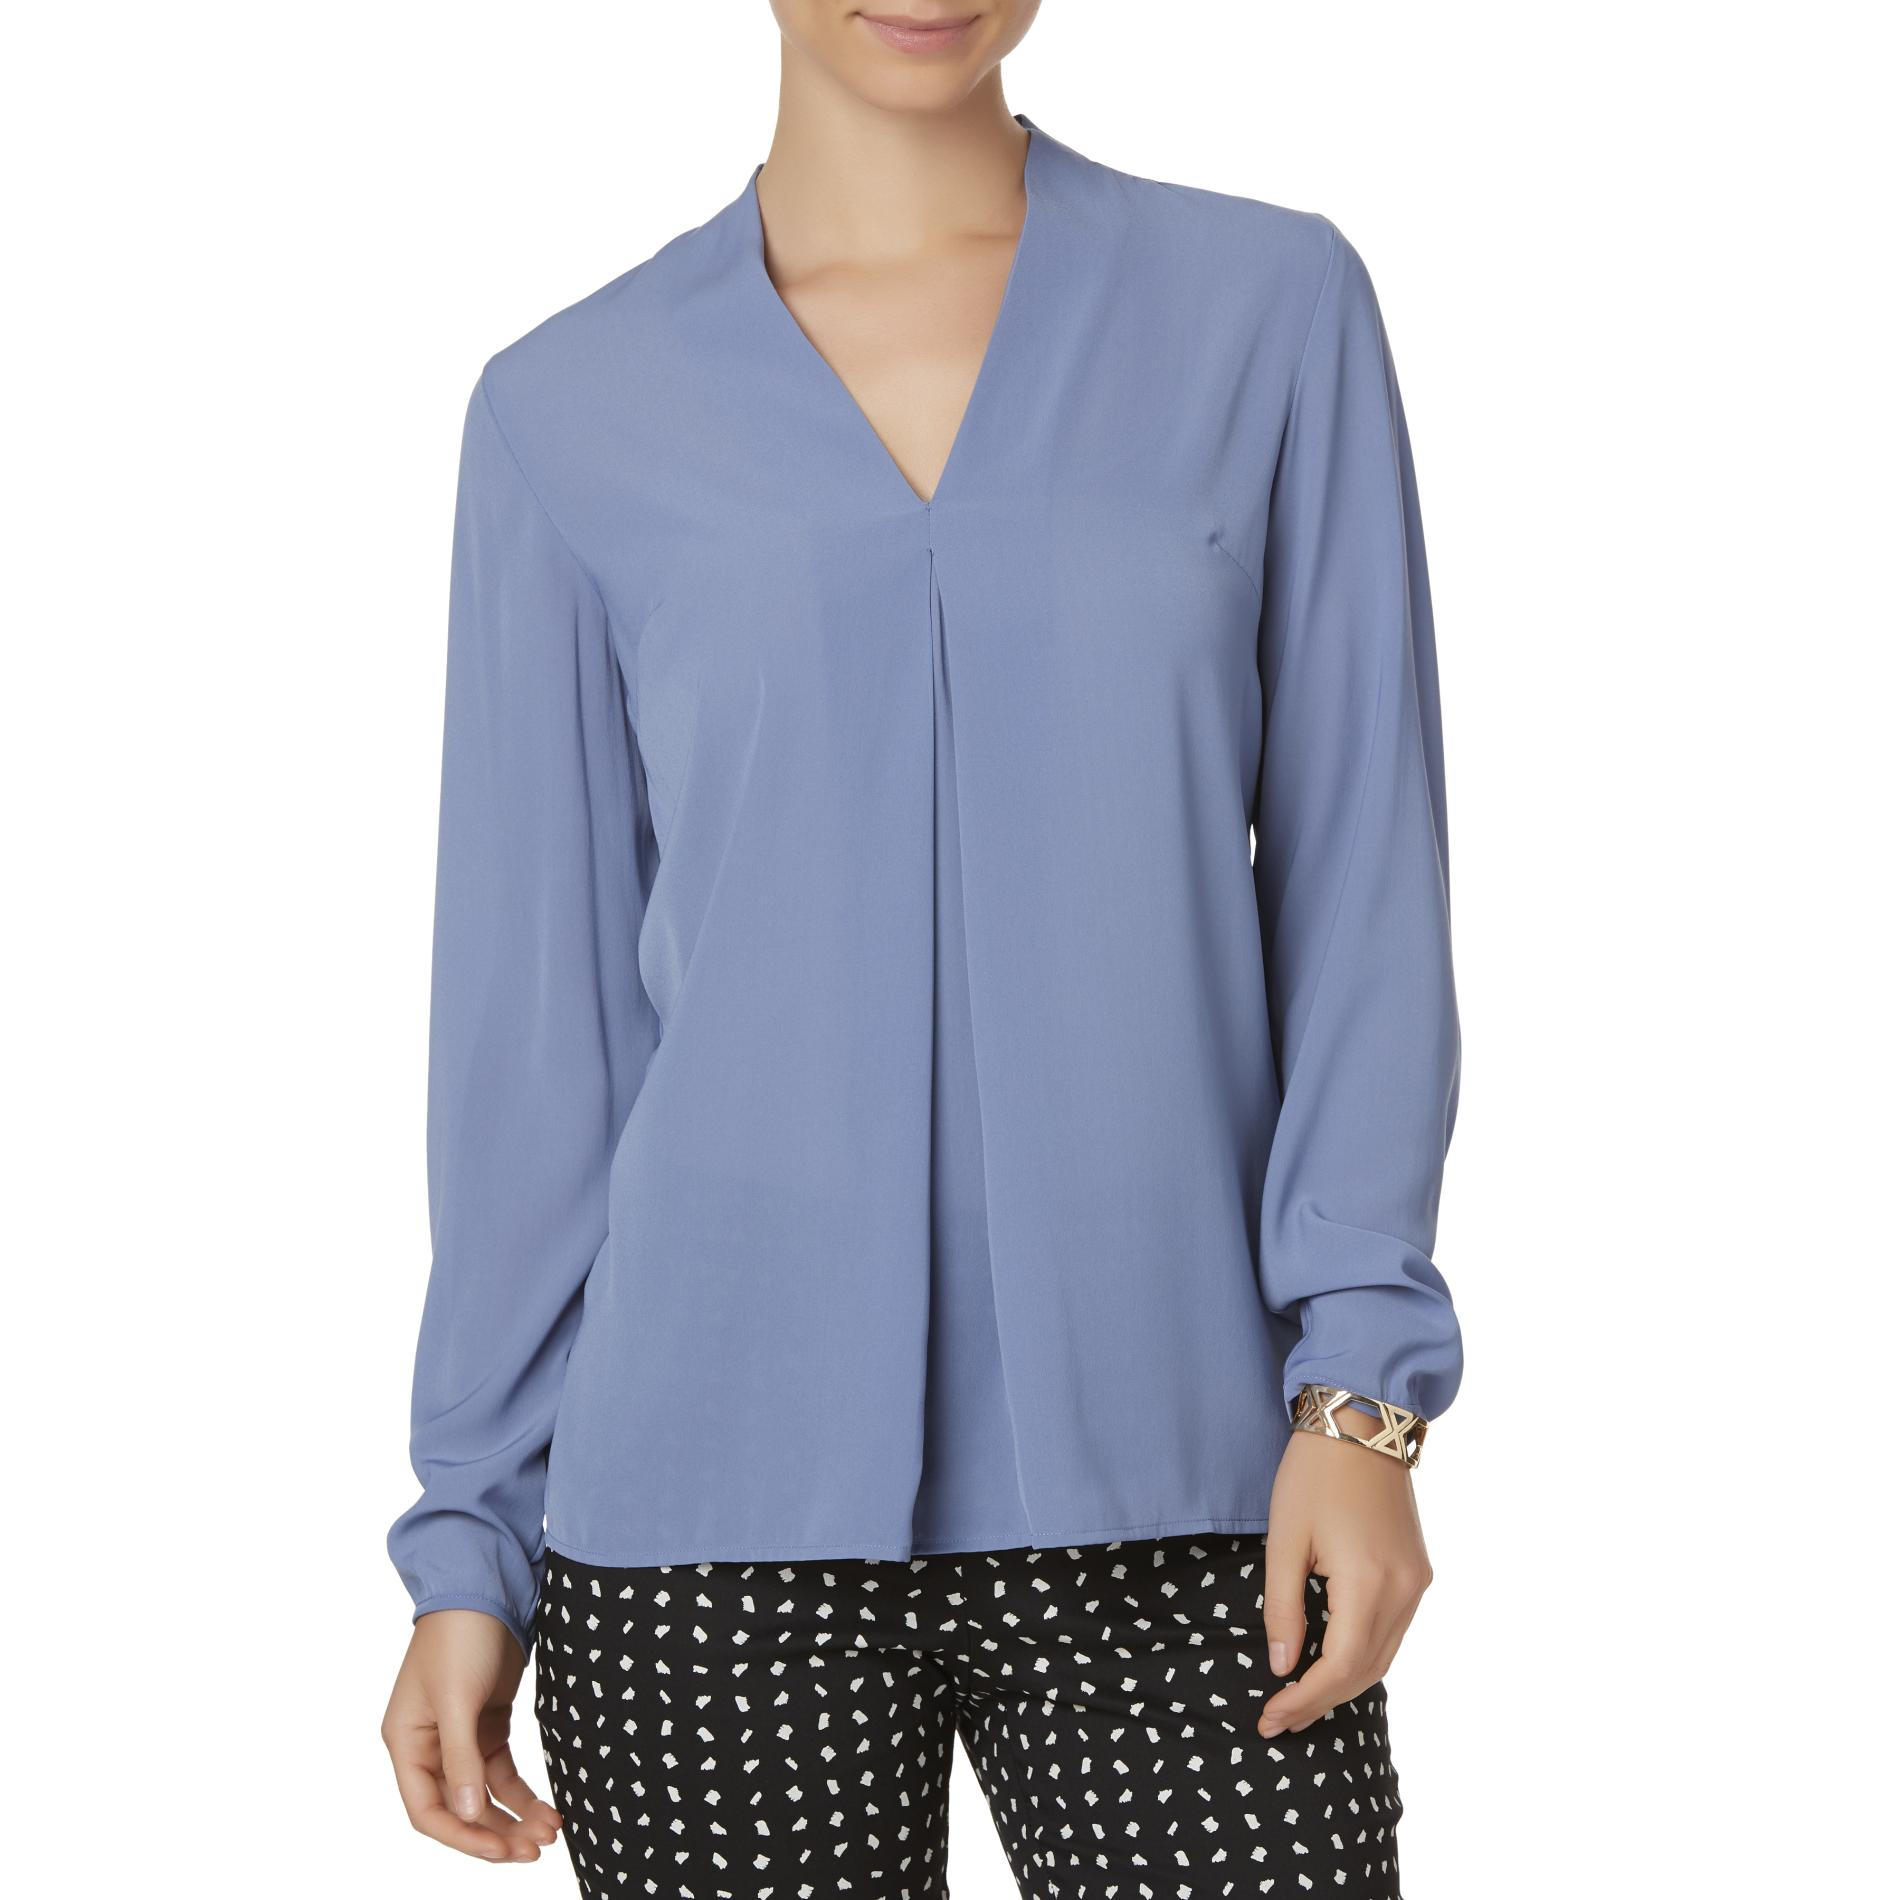 Women's Shirts as chic basic parts